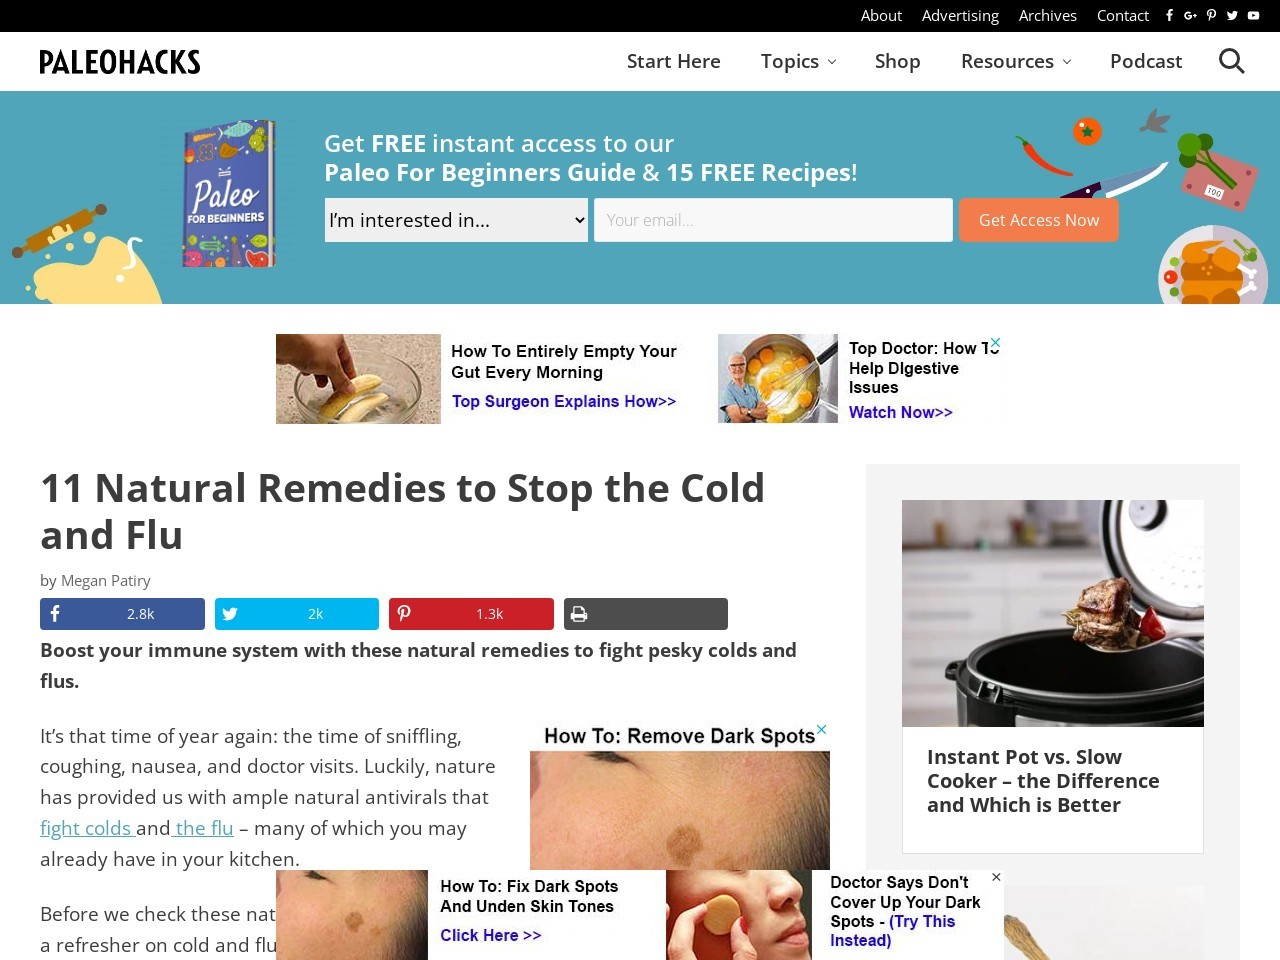 11 Natural Remedies to Stop the Cold and Flu Without Antibiotics